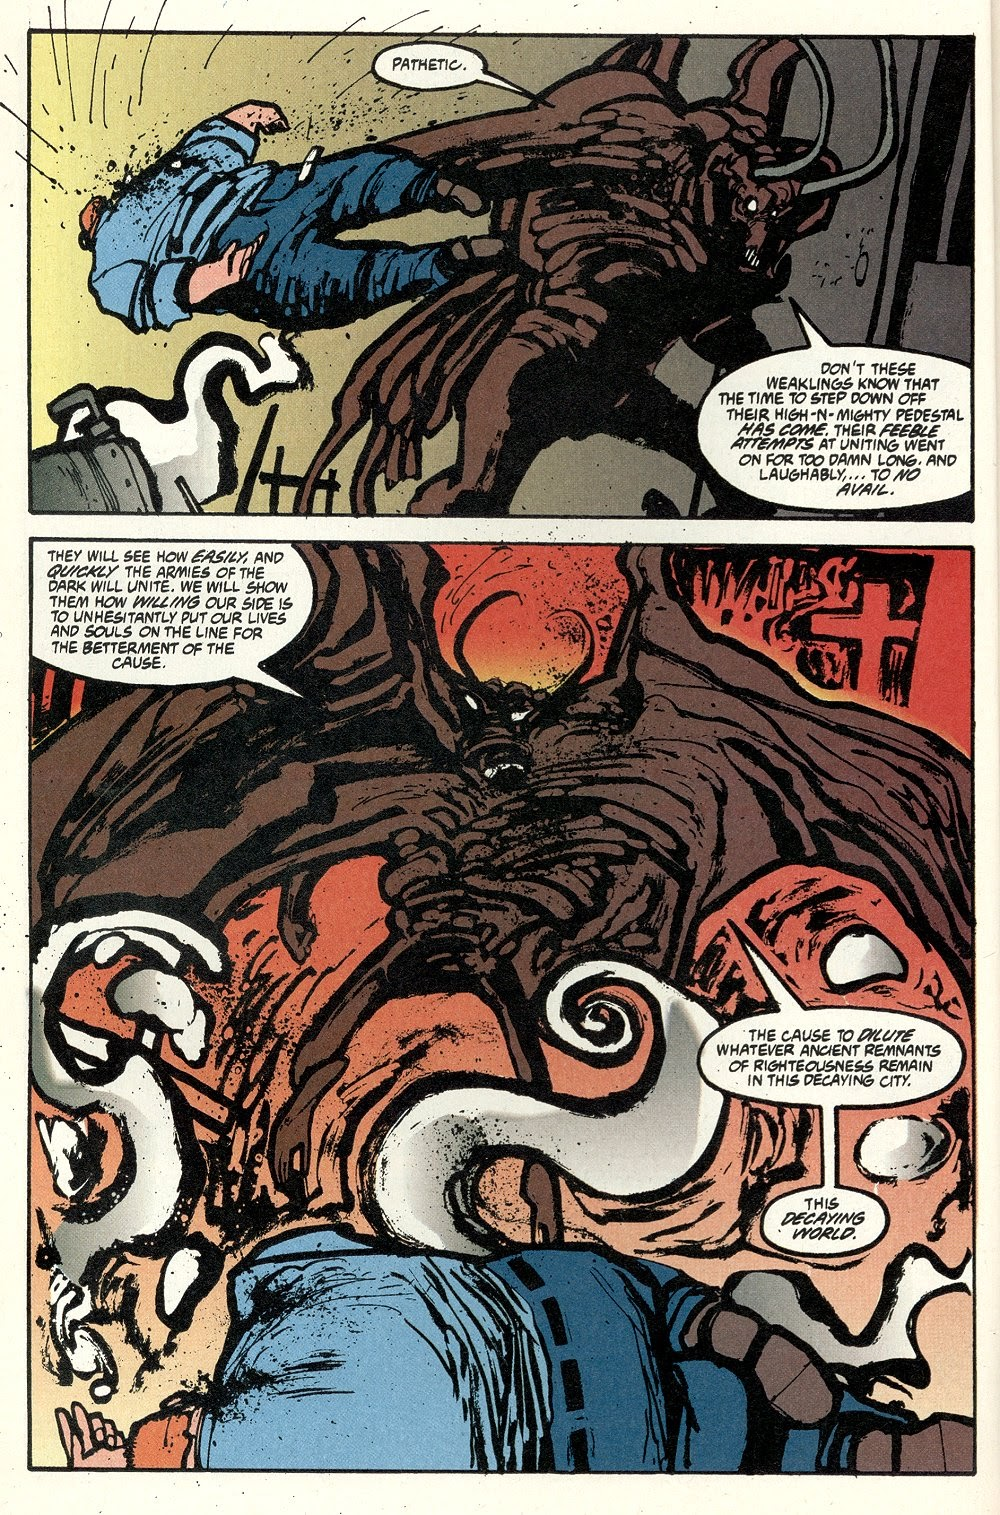 Read online Ted McKeever's Metropol comic -  Issue #11 - 6